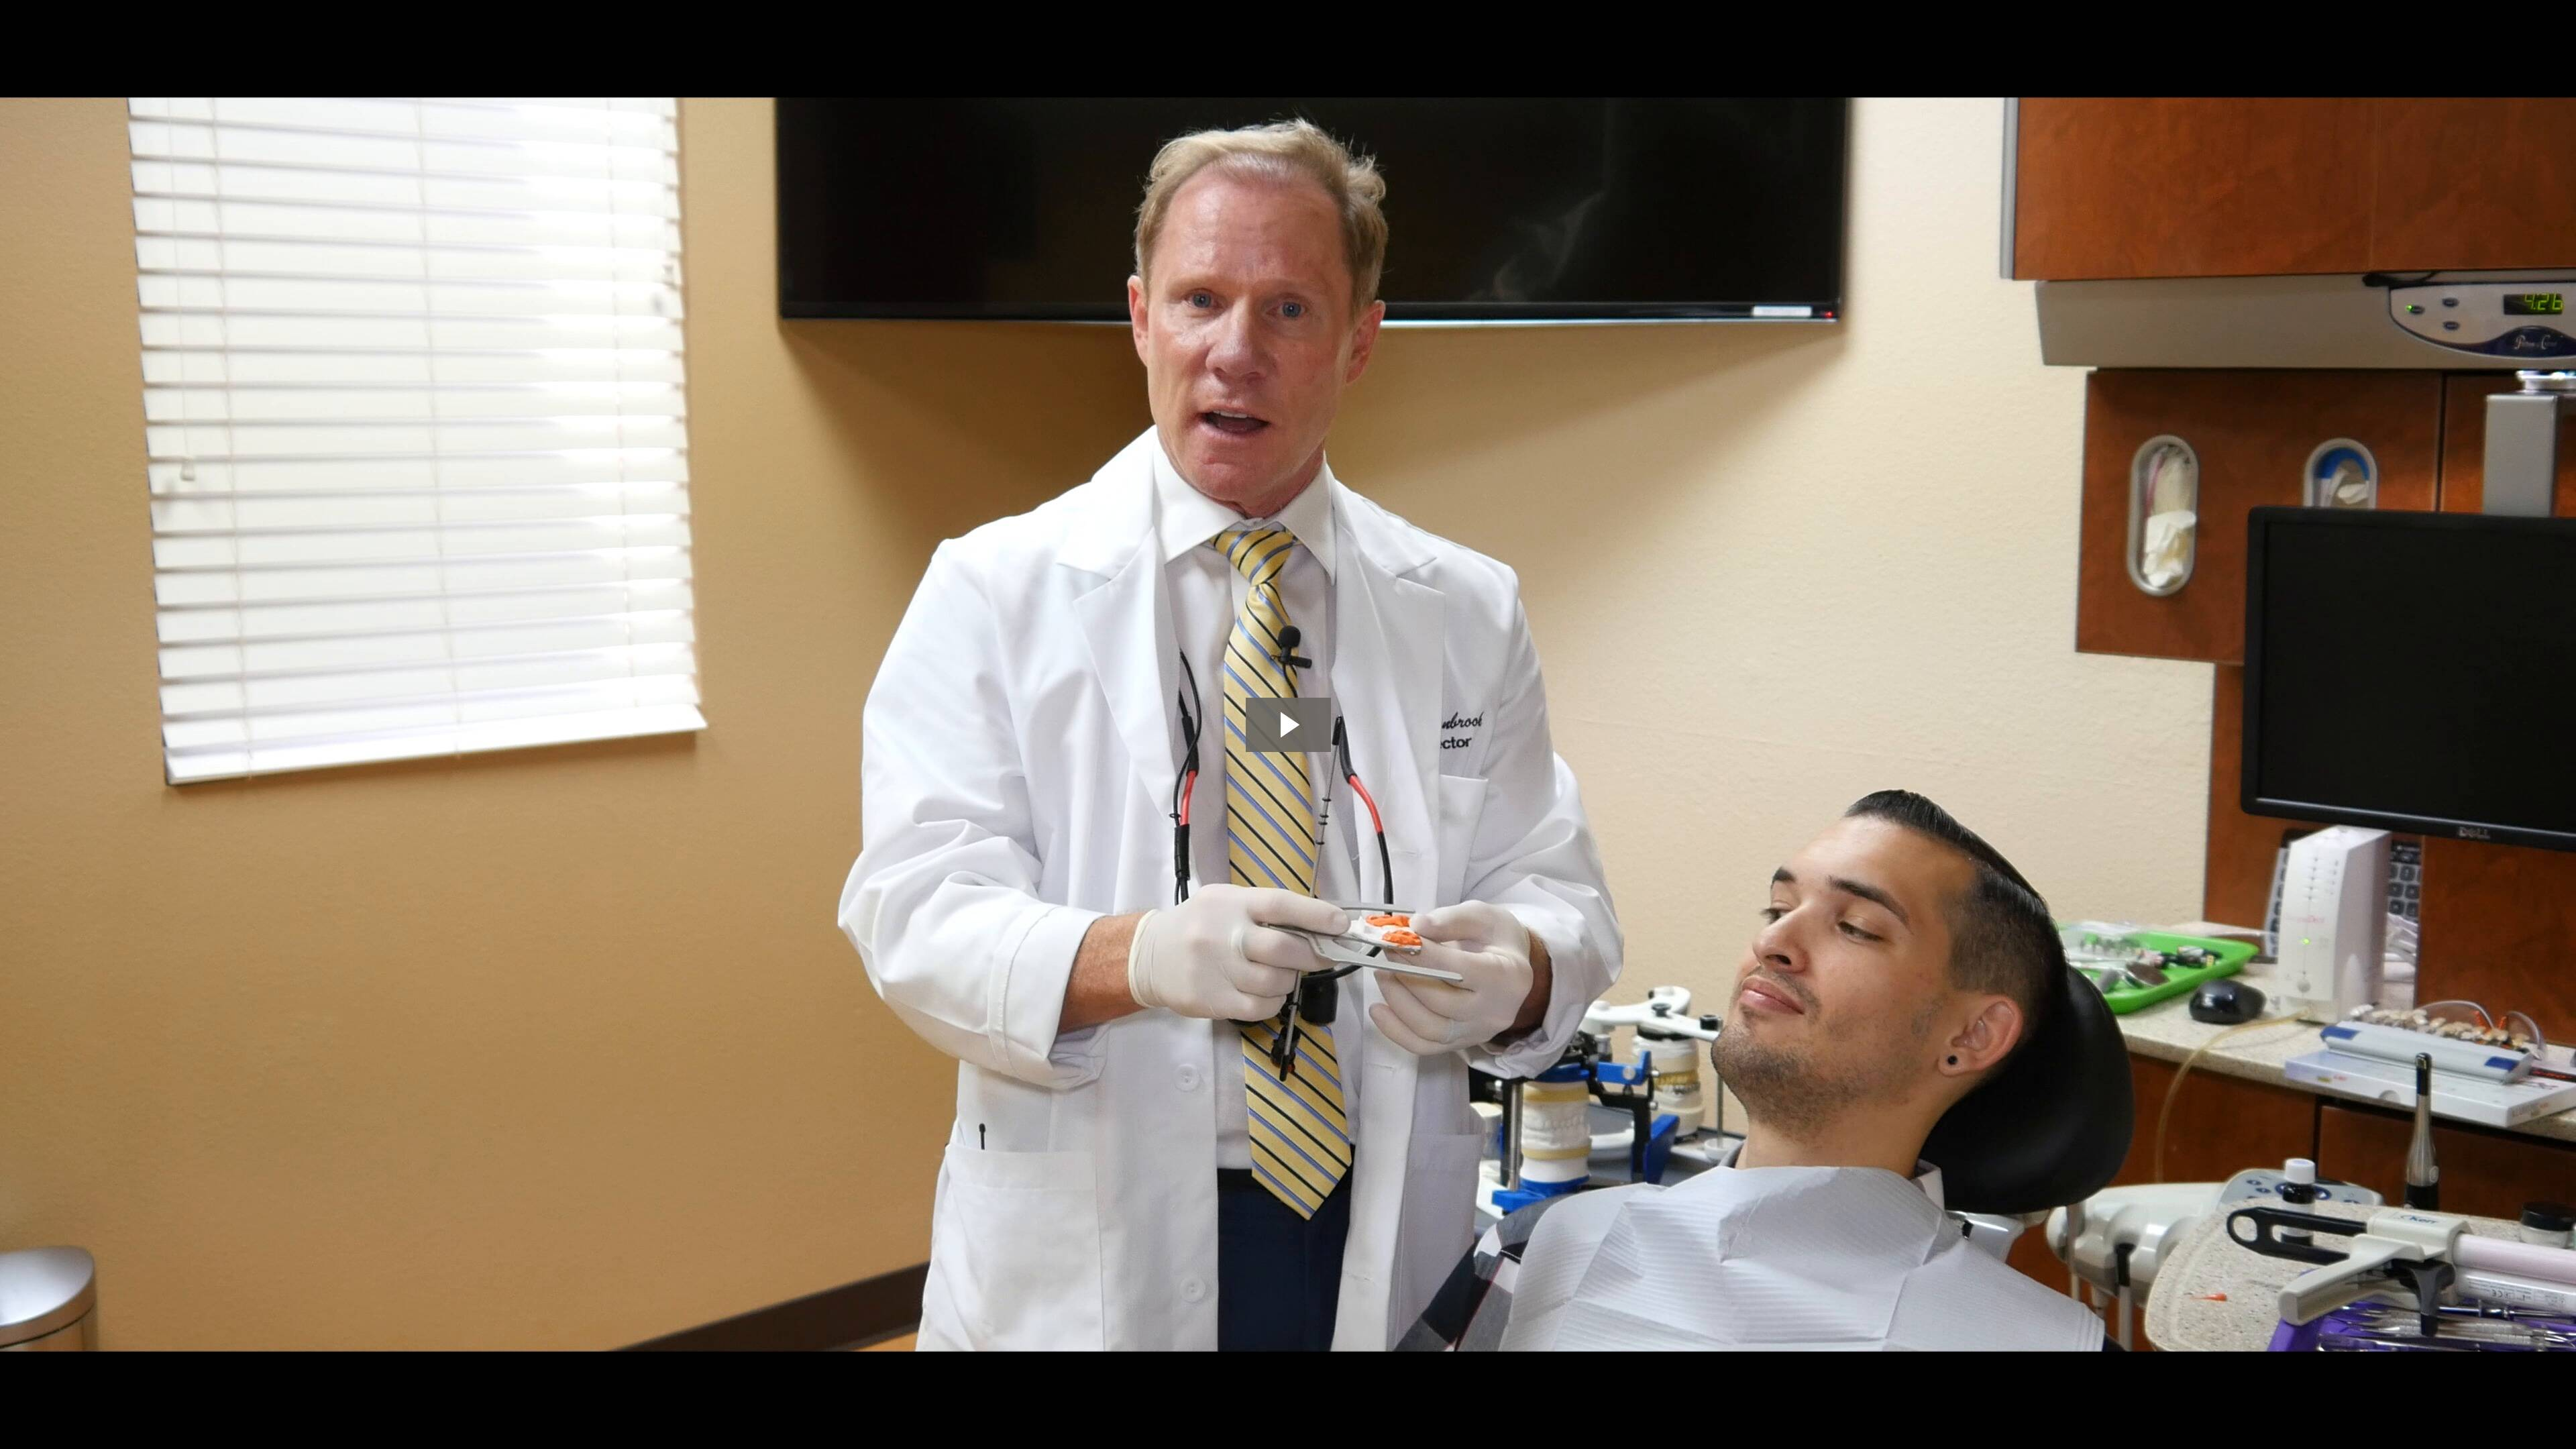 Simplify your next comprehensive treatment case with Keating's 4K Ultra HD Part 3 - Facebow Ordeal Kois Dento Facial Analyzer video series.